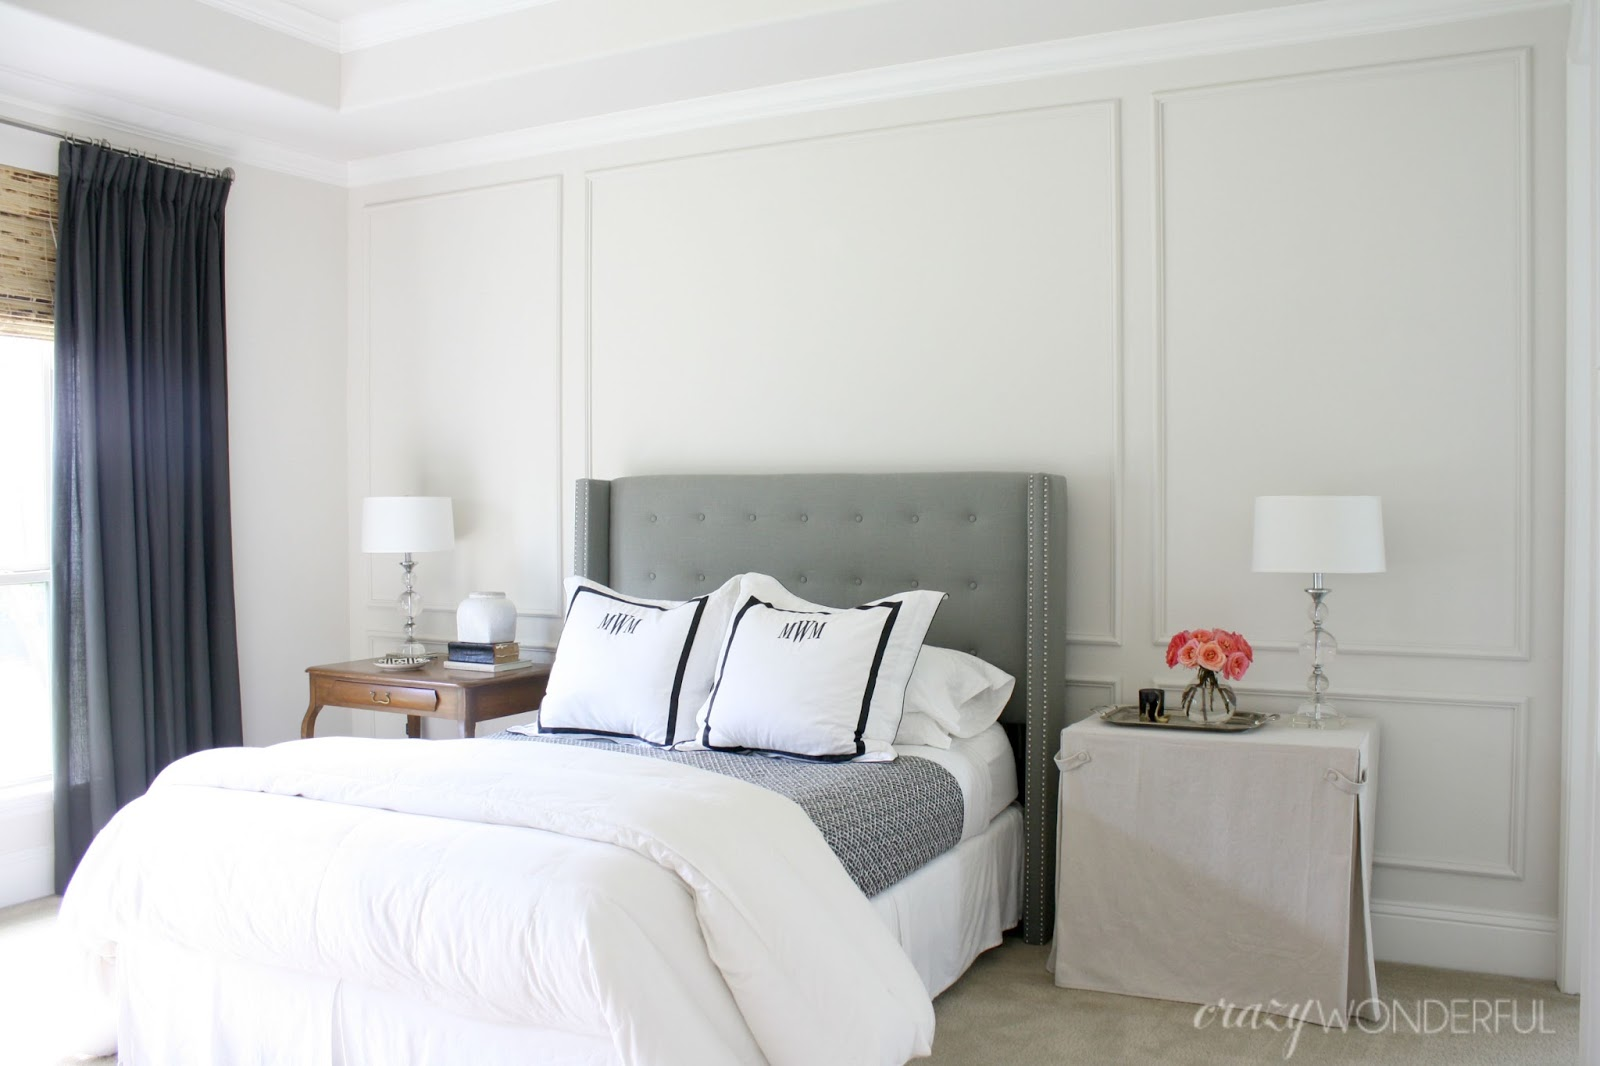 diy picture frame moulding crazy wonderful. Black Bedroom Furniture Sets. Home Design Ideas